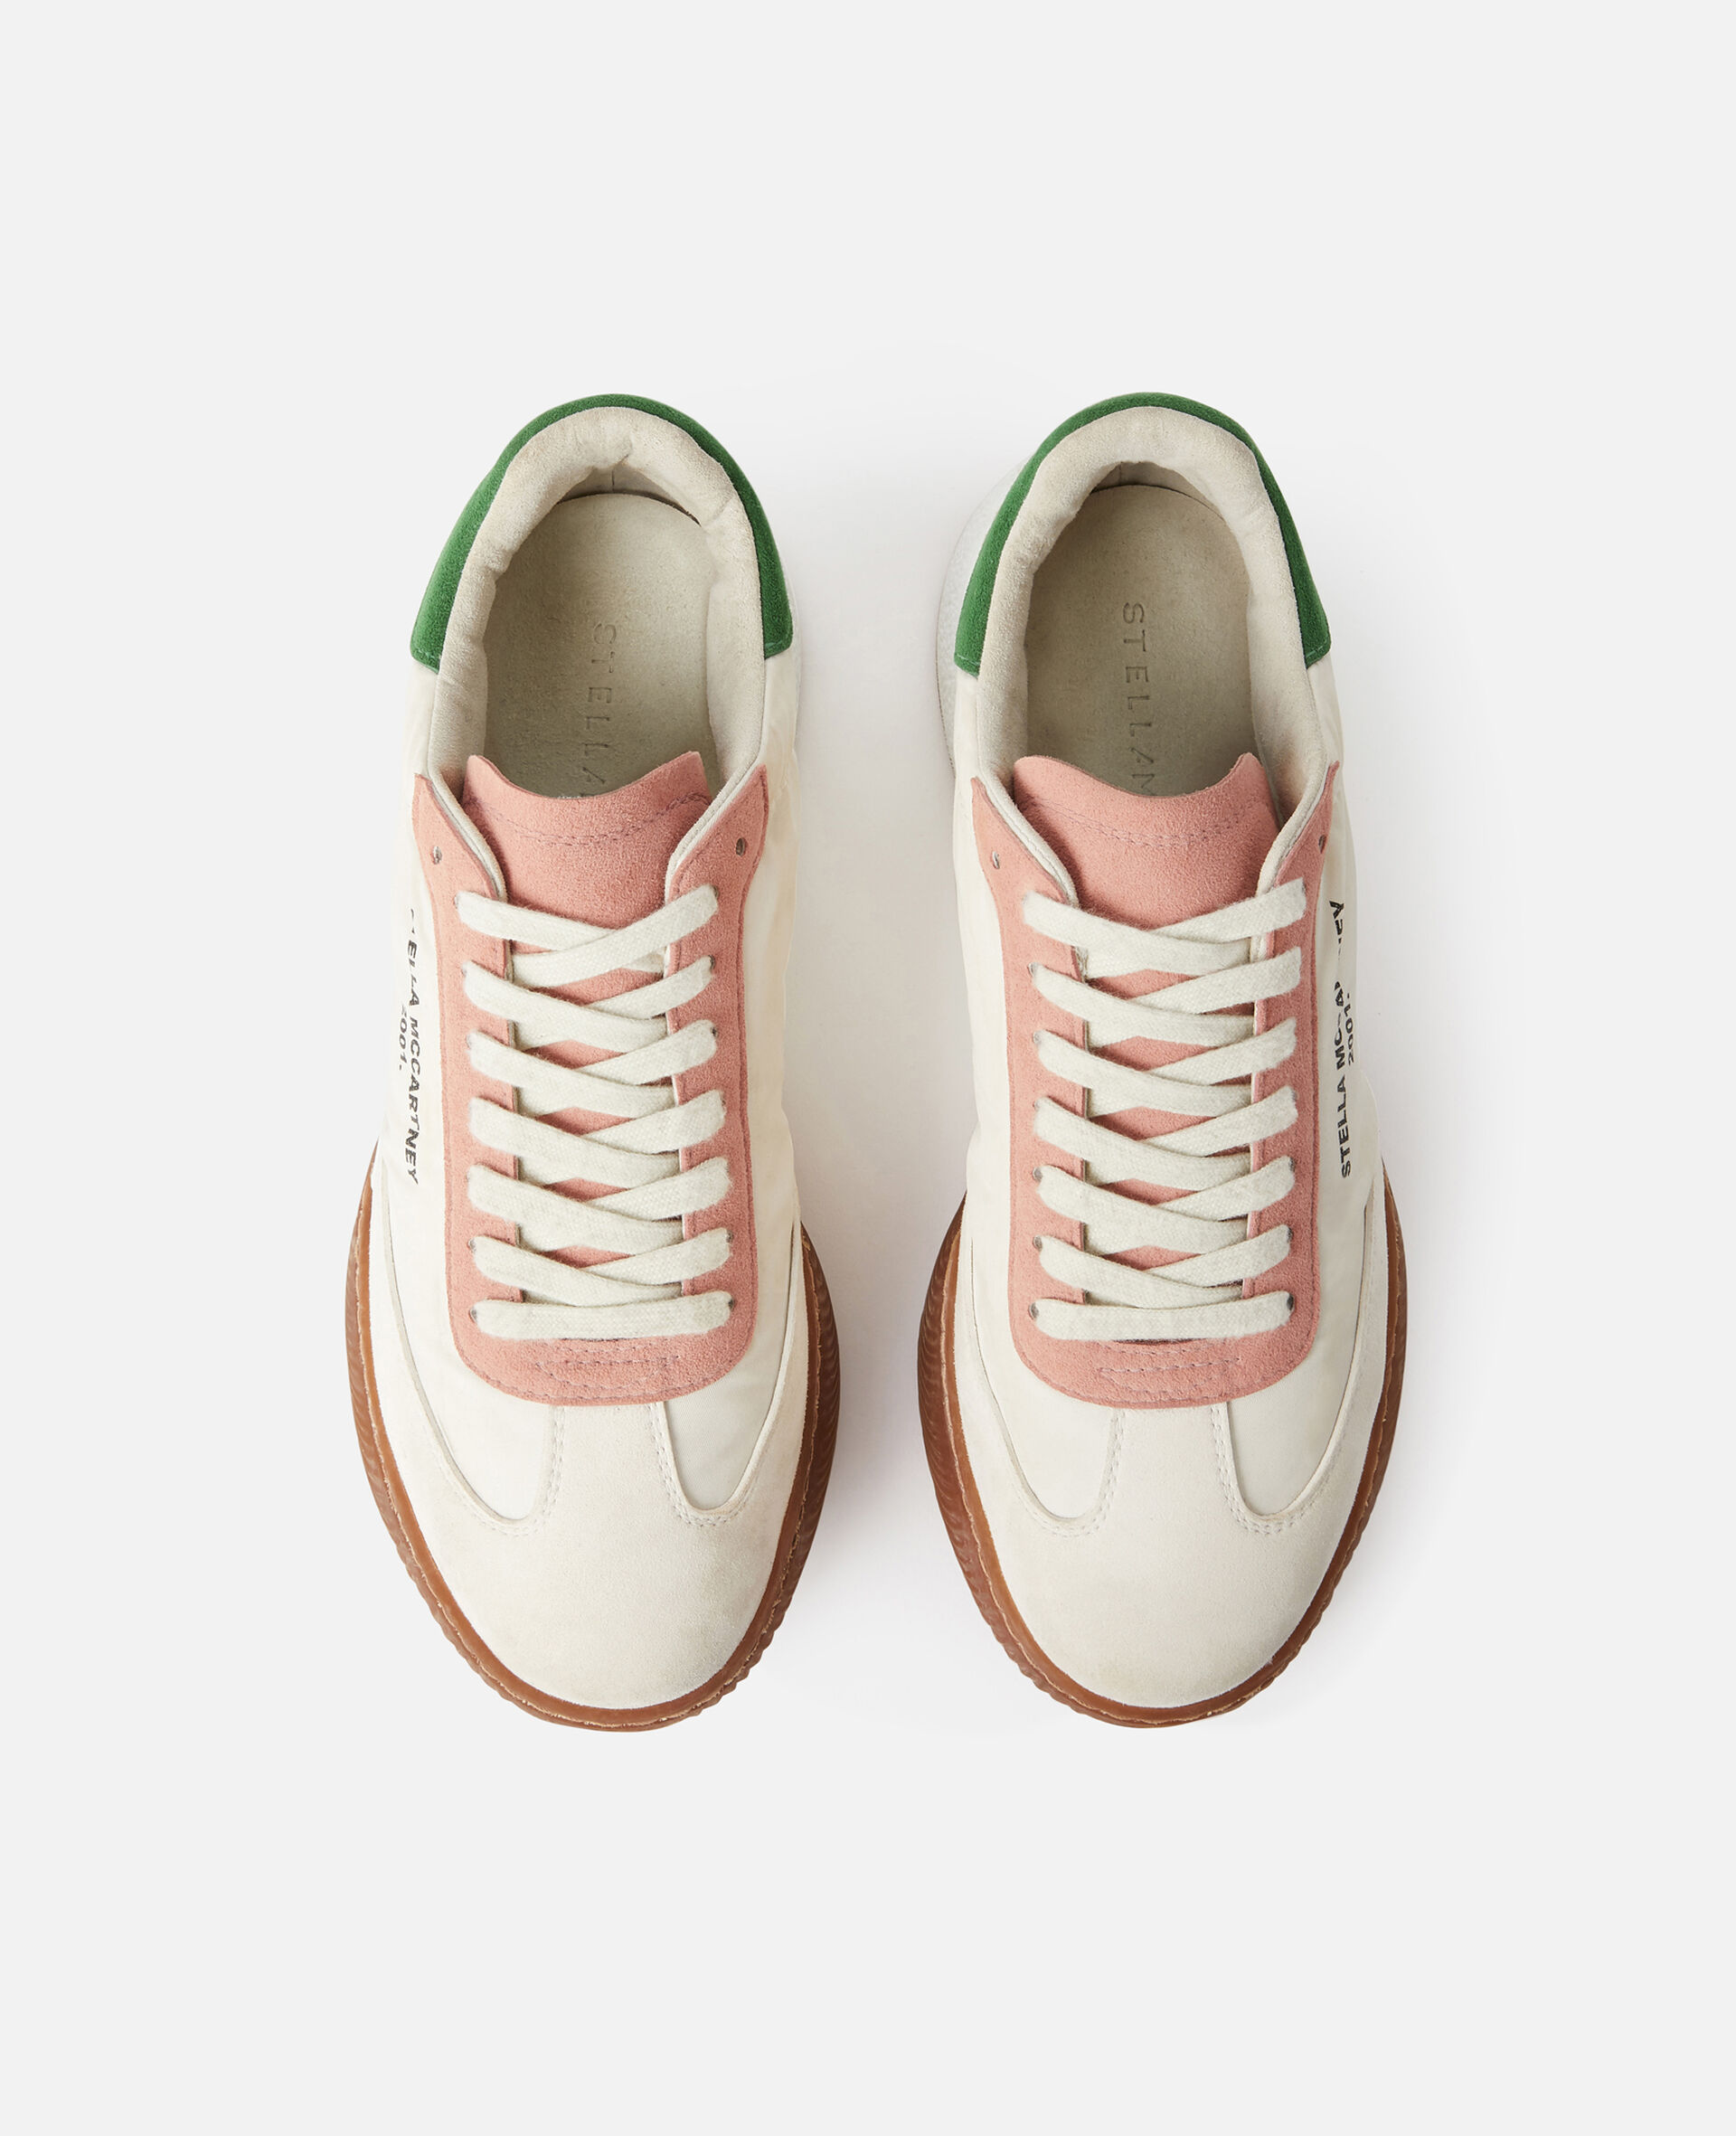 Loop Lace-up Sneakers-Multicolour-large image number 3